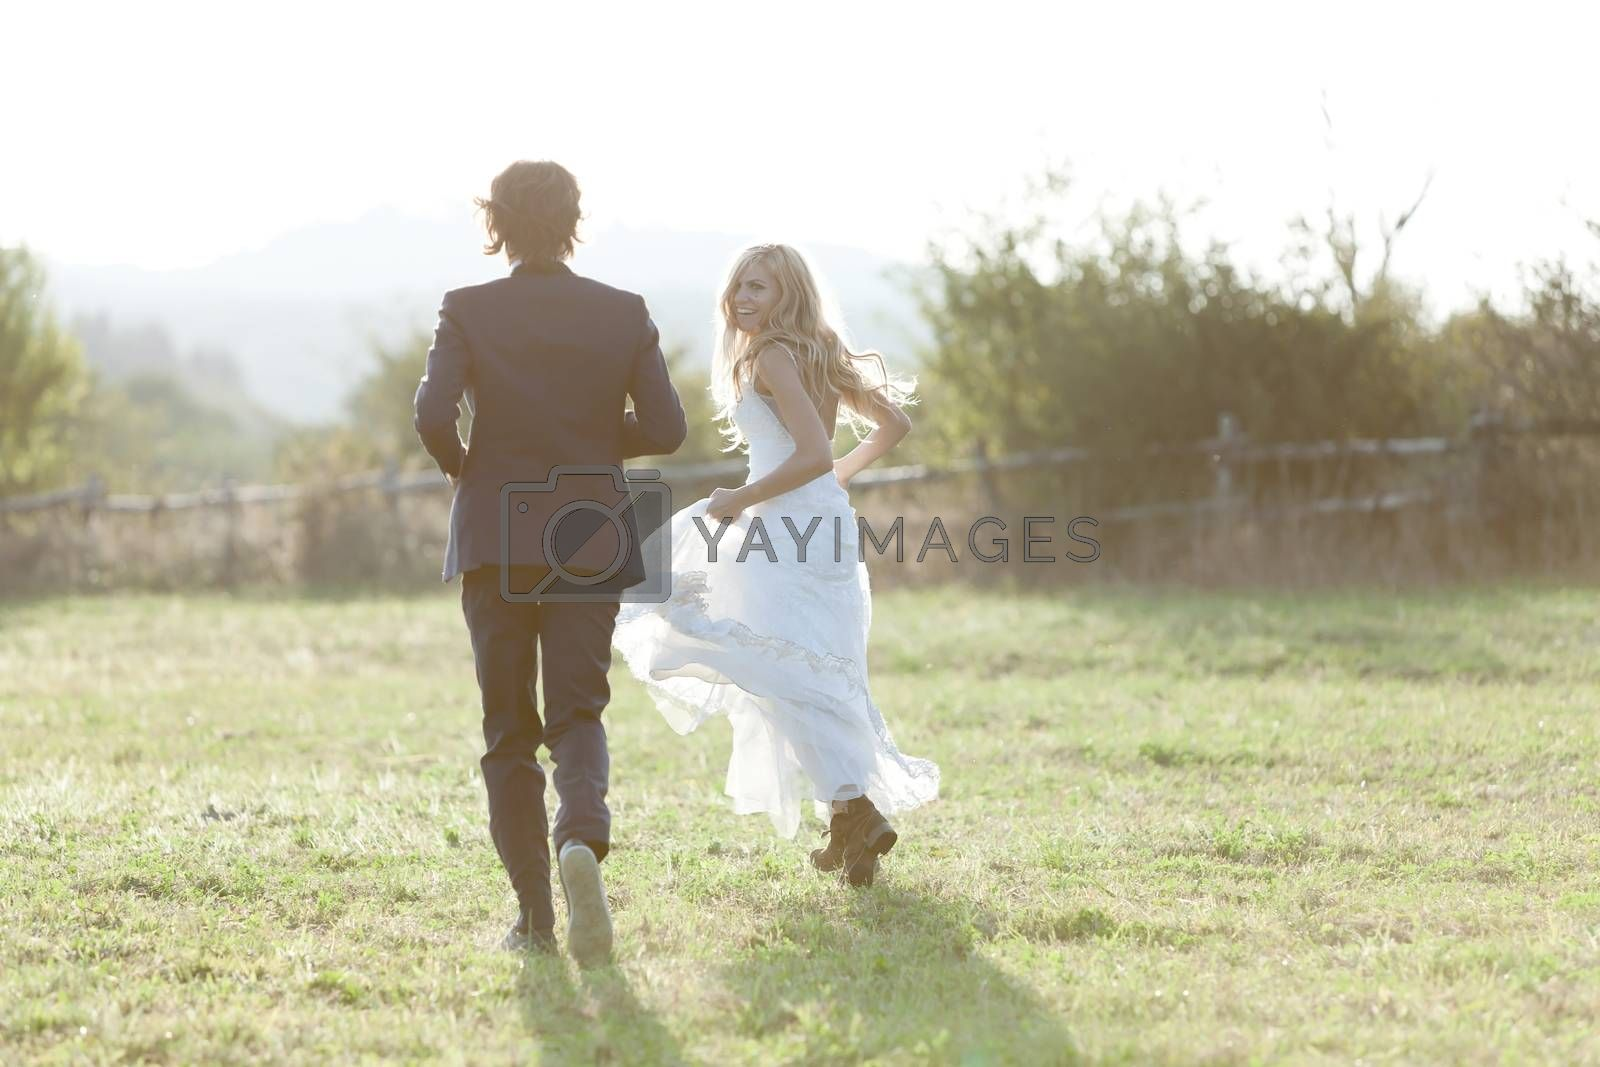 Married couple running in a field, having fun and smiling. She is looking back.